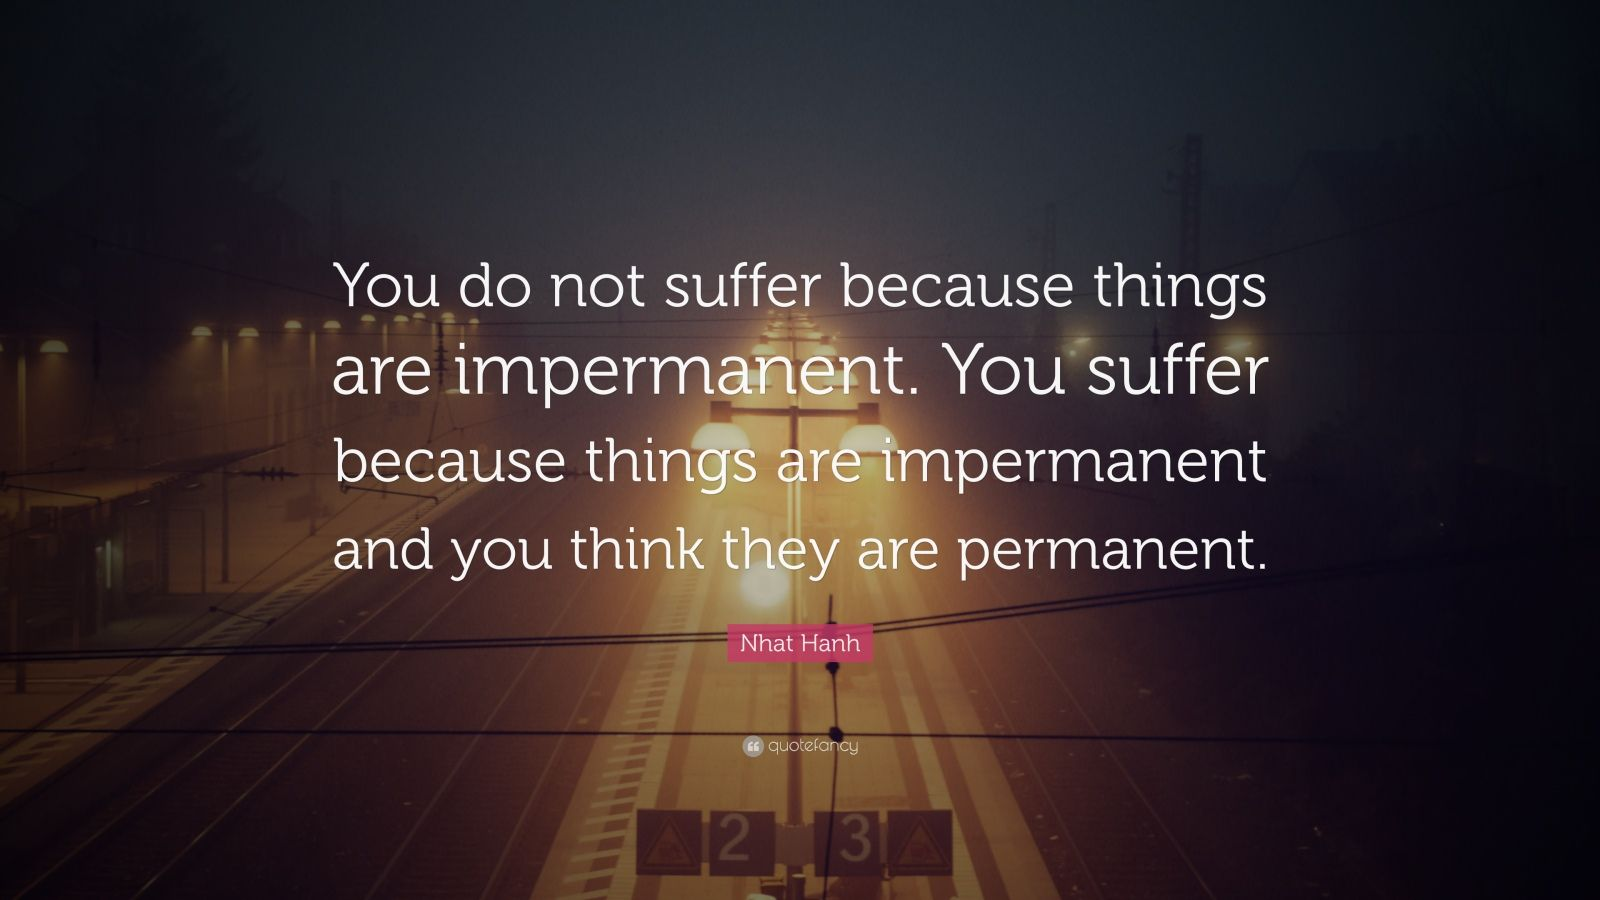 """Nhat Hanh Quote: """"You do not suffer because things are impermanent. You suffer because things are impermanent and you think they are permanent."""""""